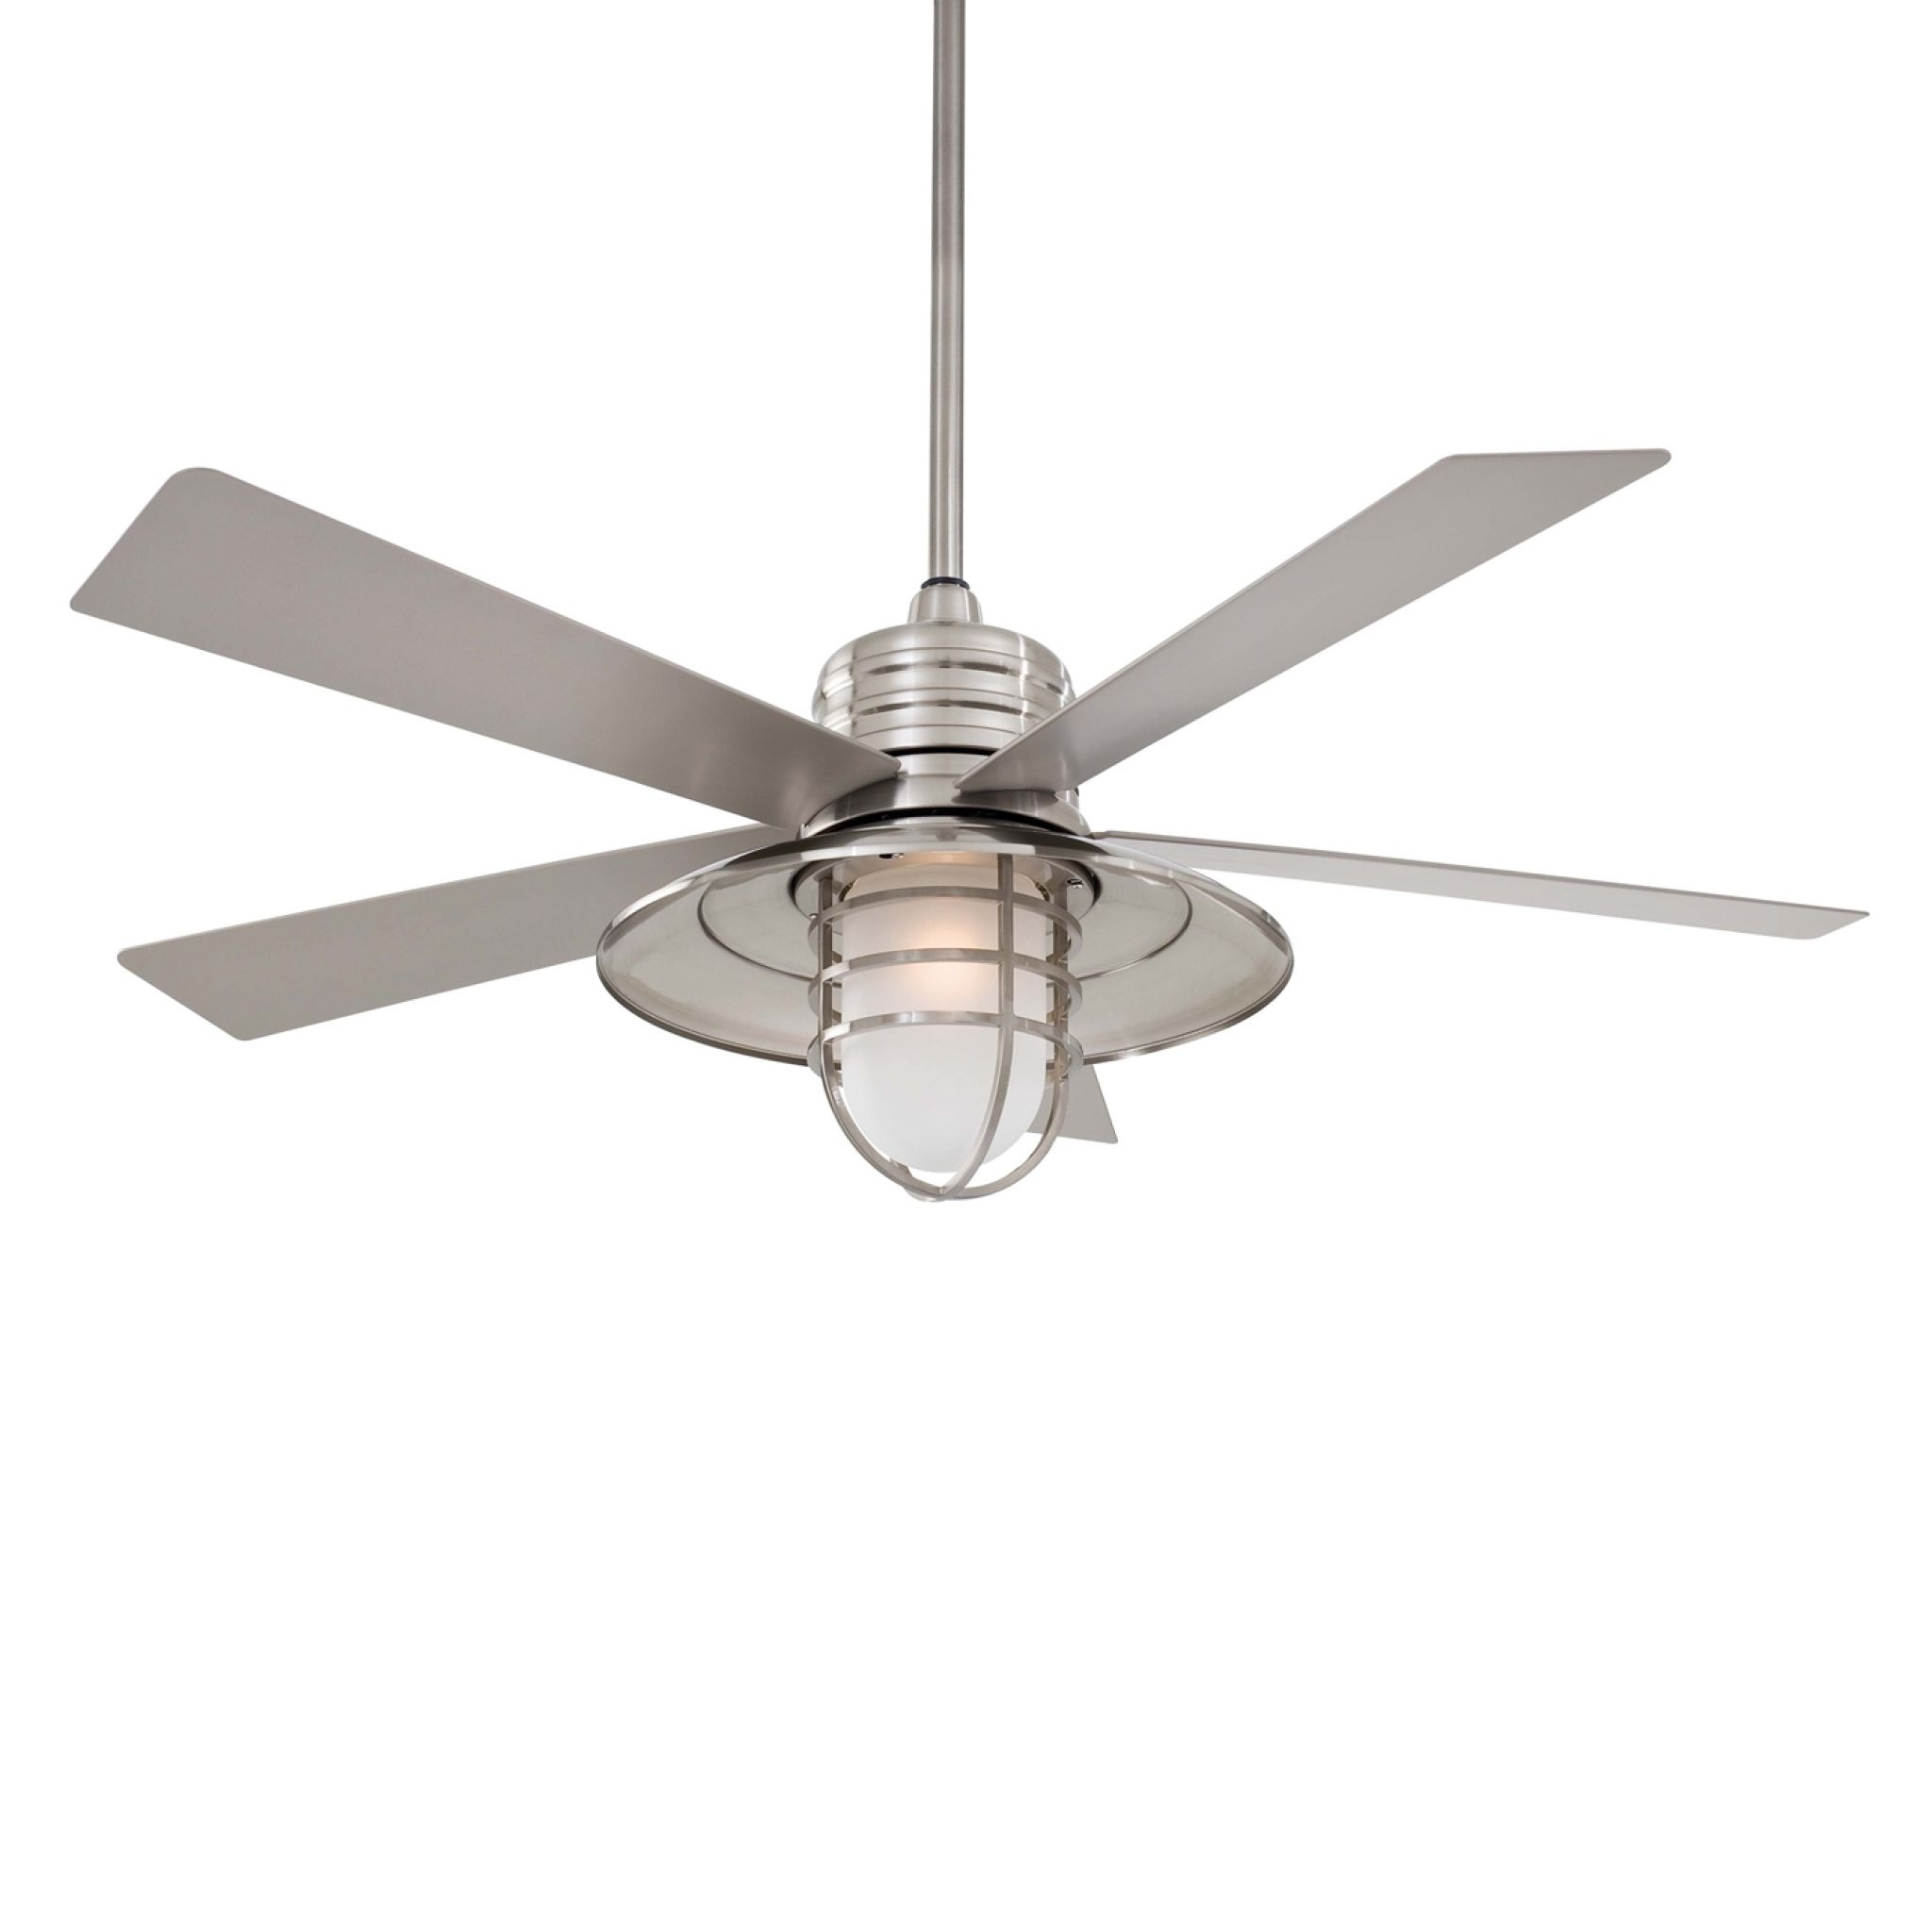 Widely Used Small Outdoor Ceiling Fan With Light – Best Paint For Interior Walls Regarding Small Outdoor Ceiling Fans With Lights (View 20 of 20)